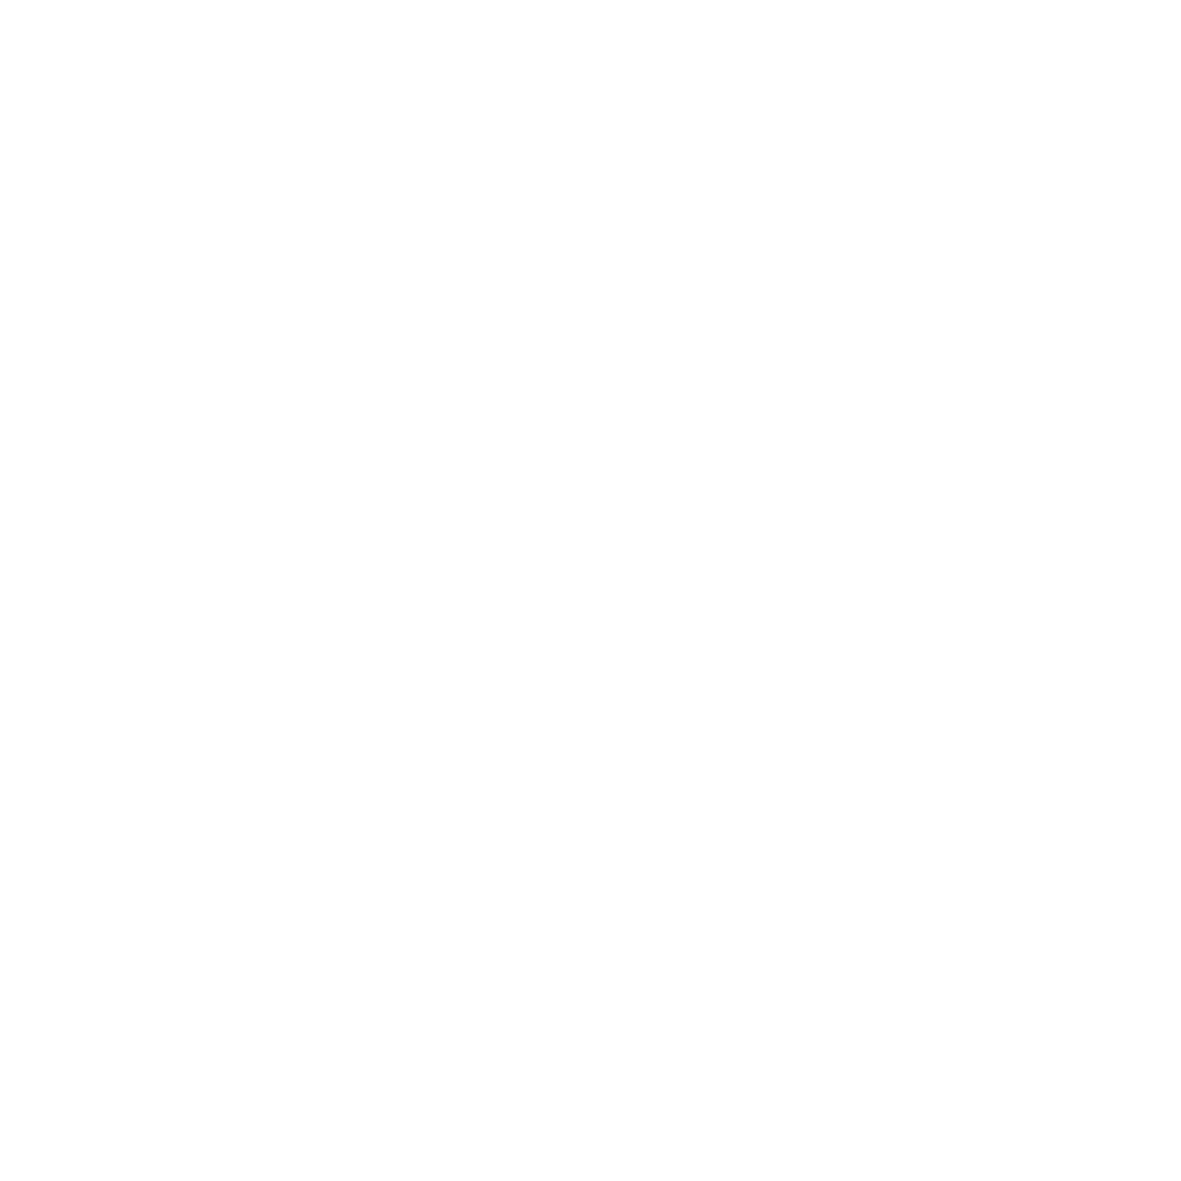 Highden Estate